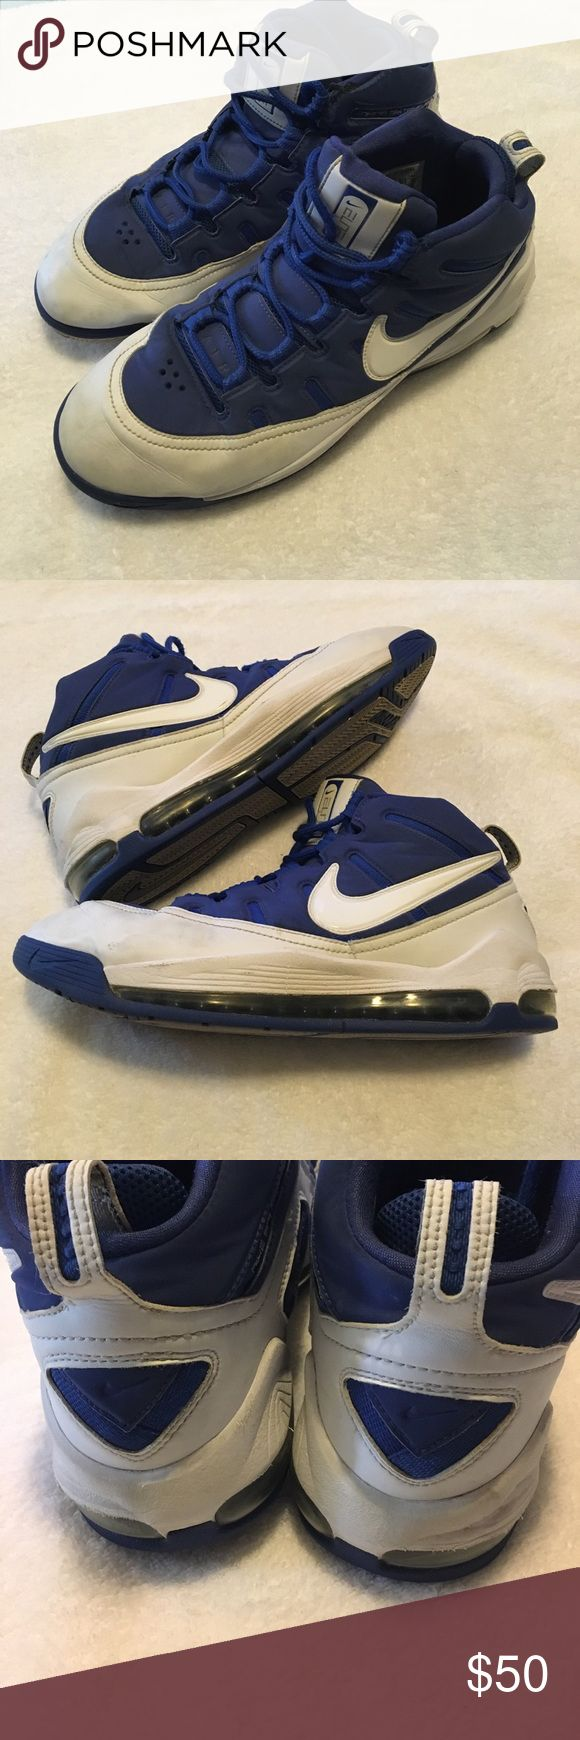 Nike Mid High Top Athletic Elite Basketball Shoes A great pair of Nike Elites for basketball or casual everyday wear. Leather with a white and blue color combo. Some signs of wear- scuffs and by up of shoes laces. Shown in photos! Nike Shoes Athletic Shoes